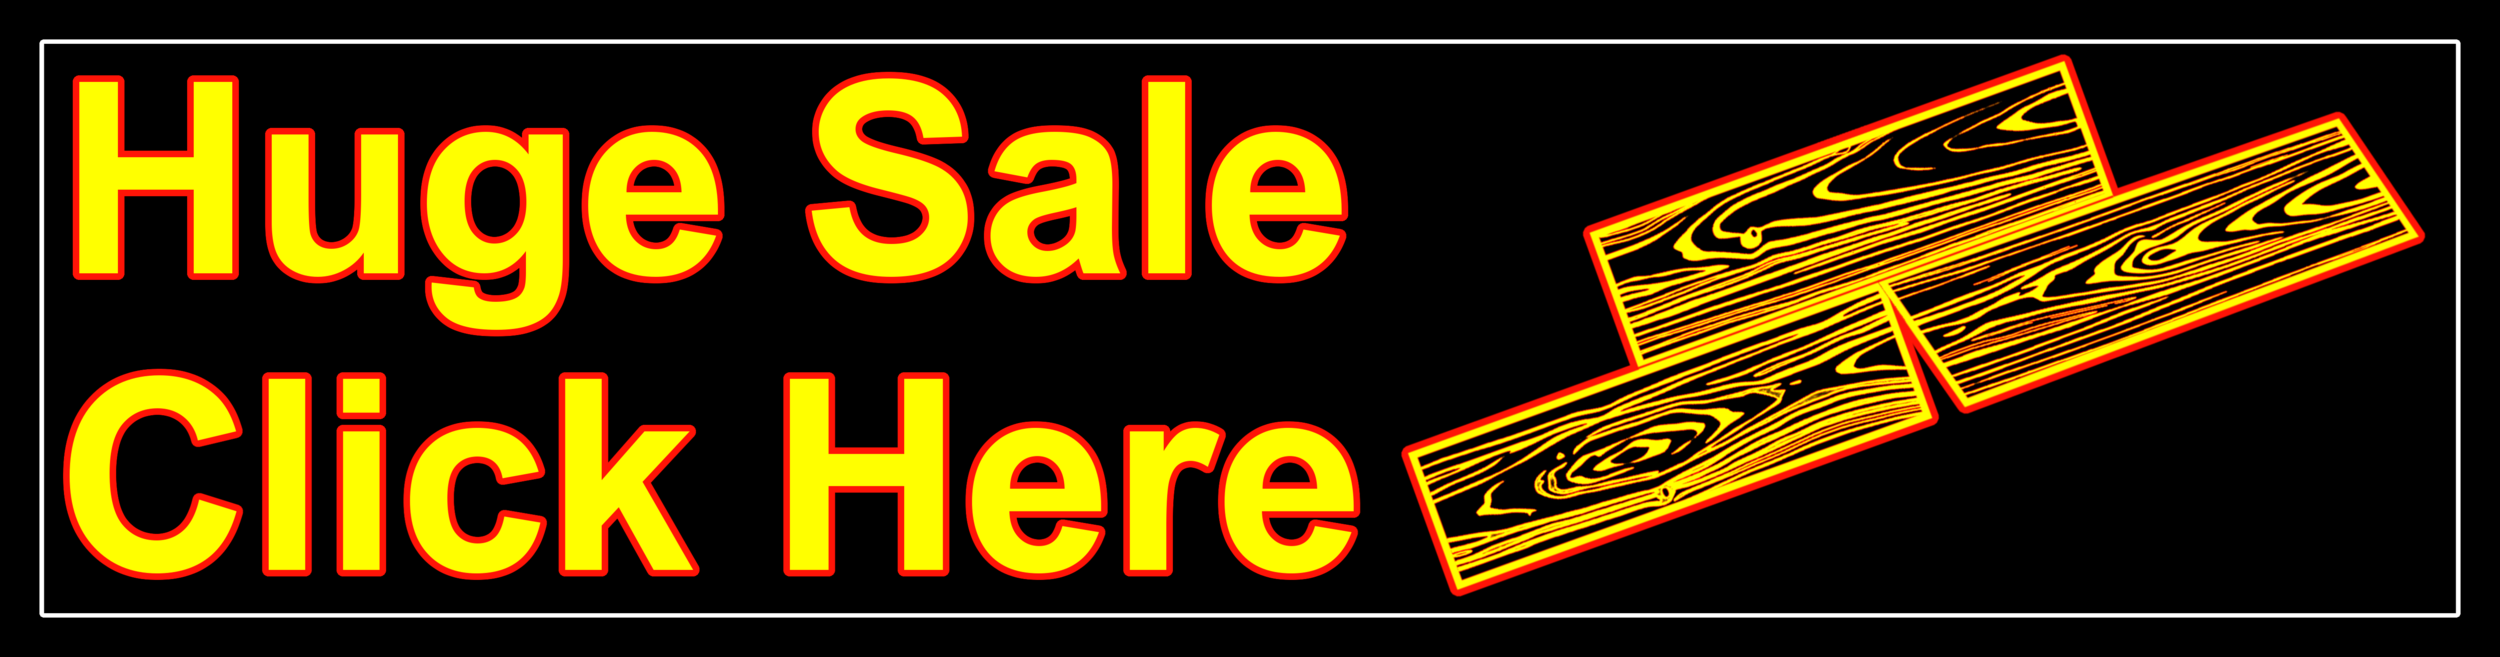 Huge Sale Button.png